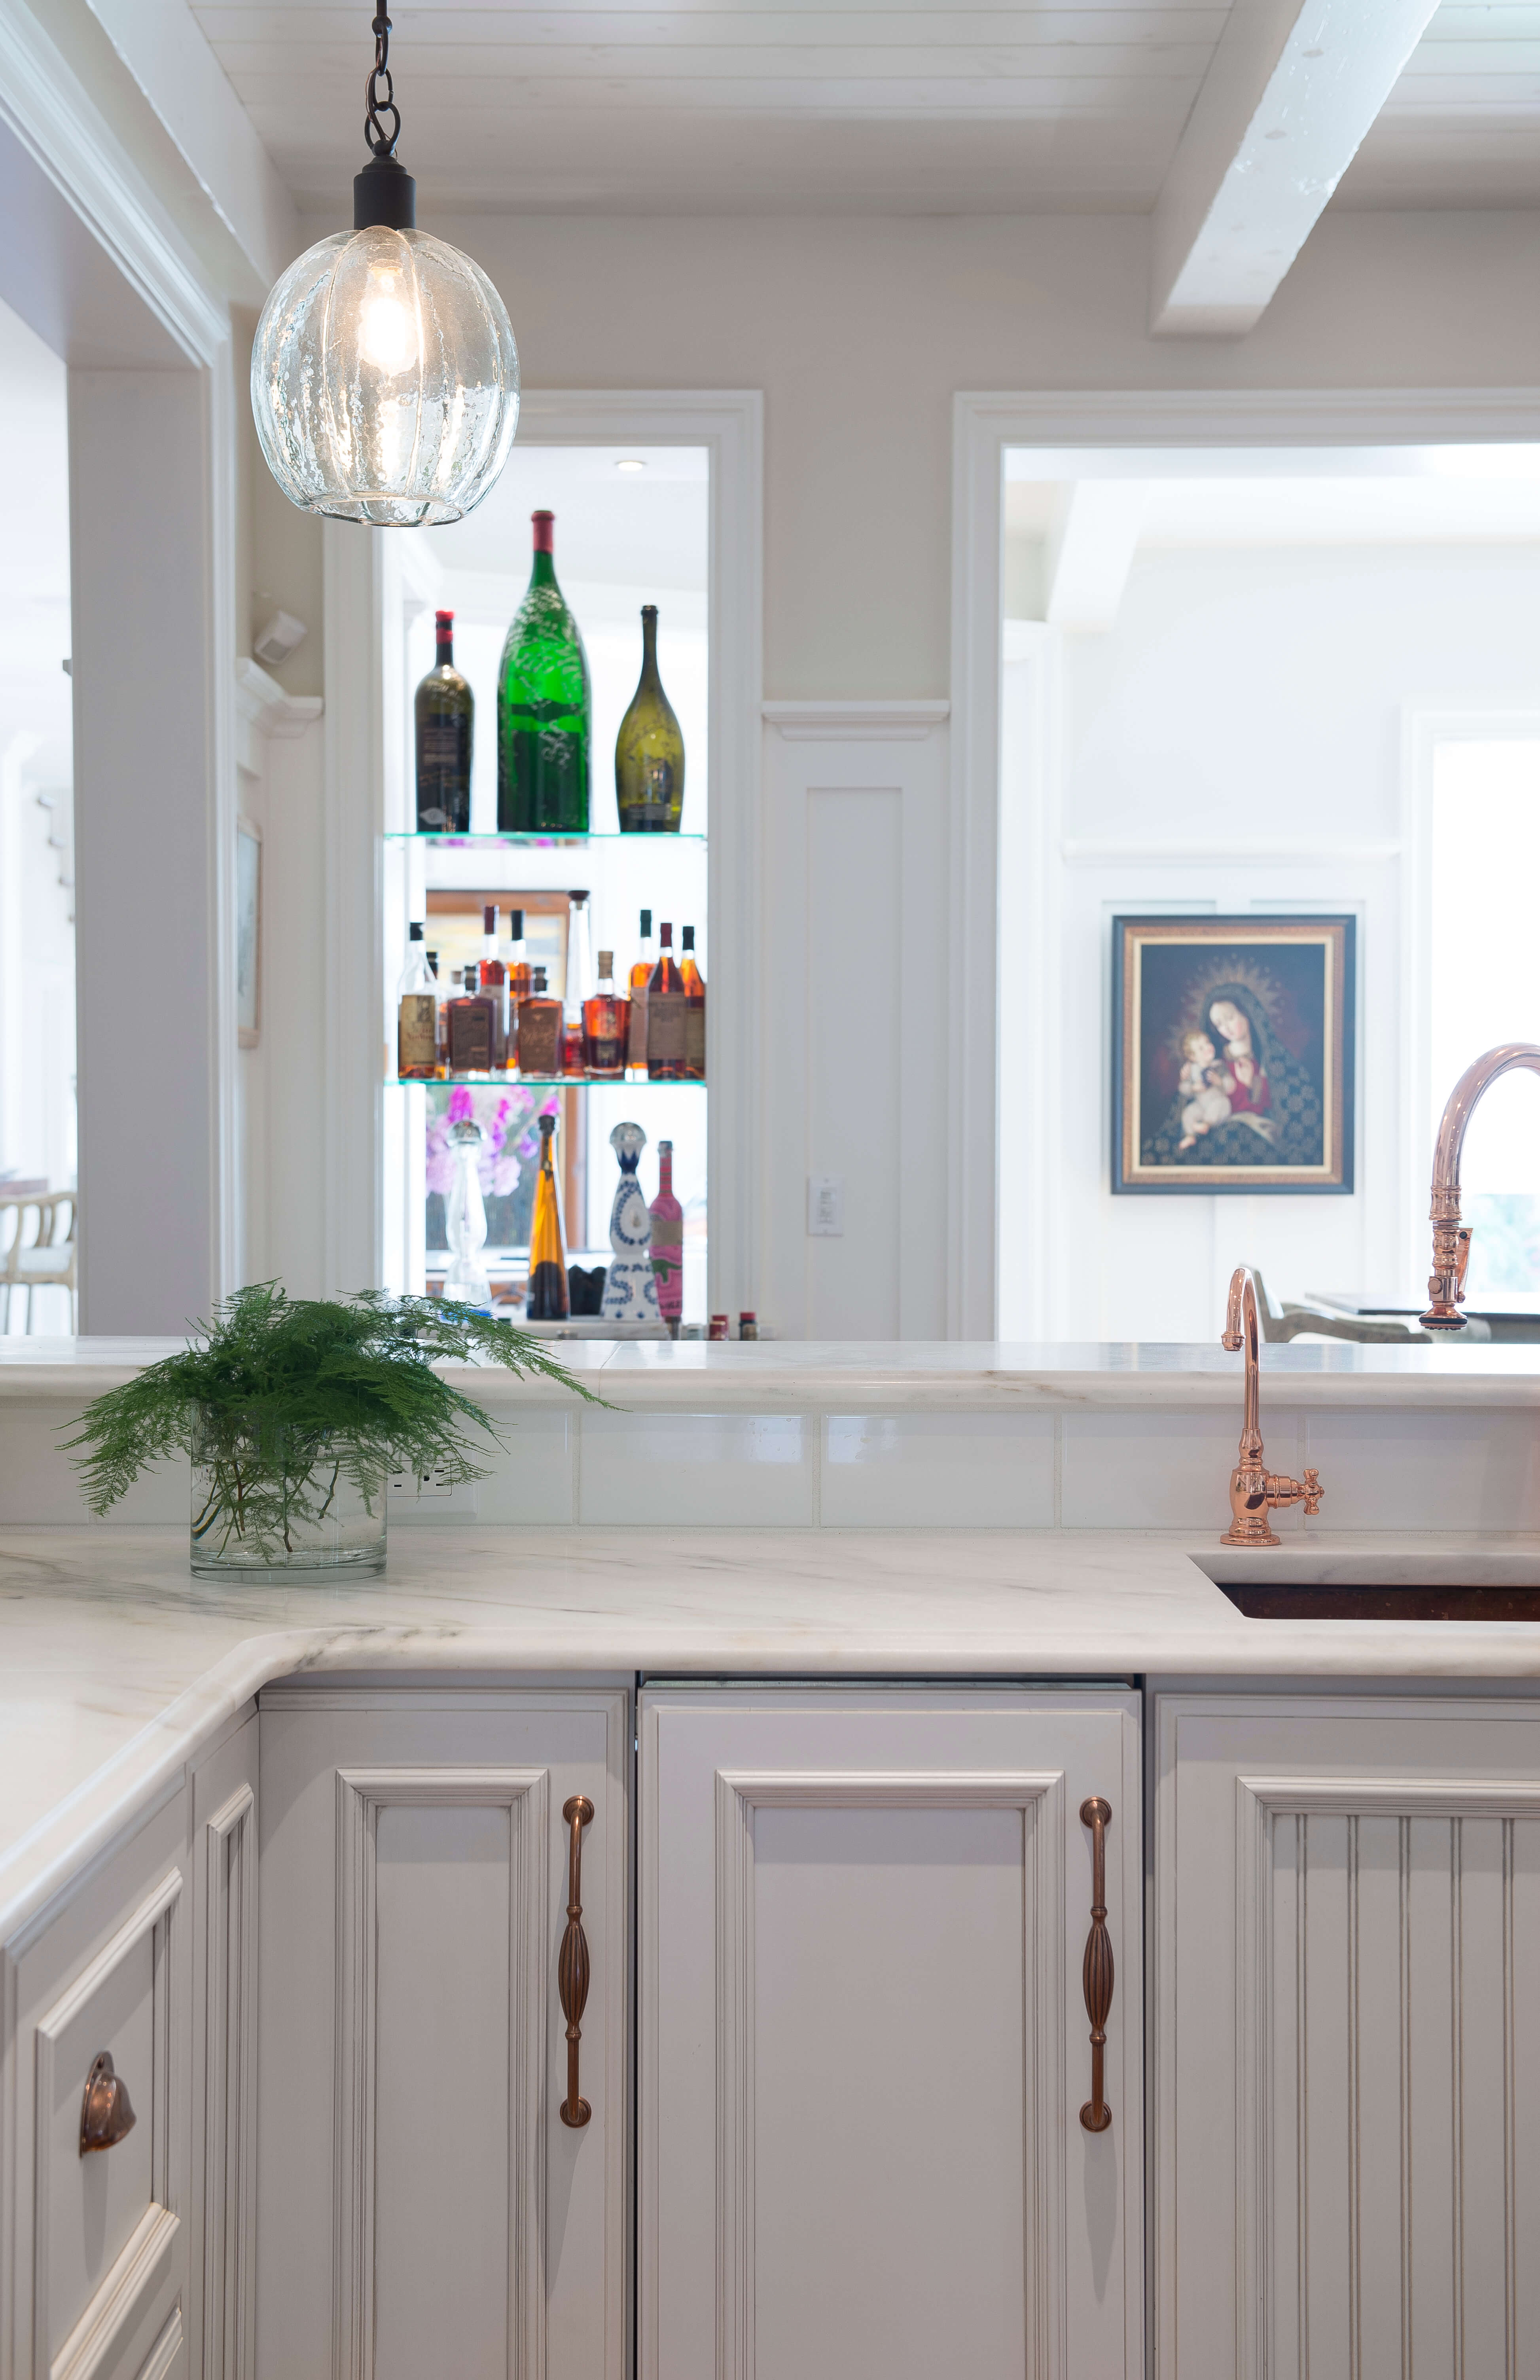 An ice maker is located to the left of the sink for convenience.